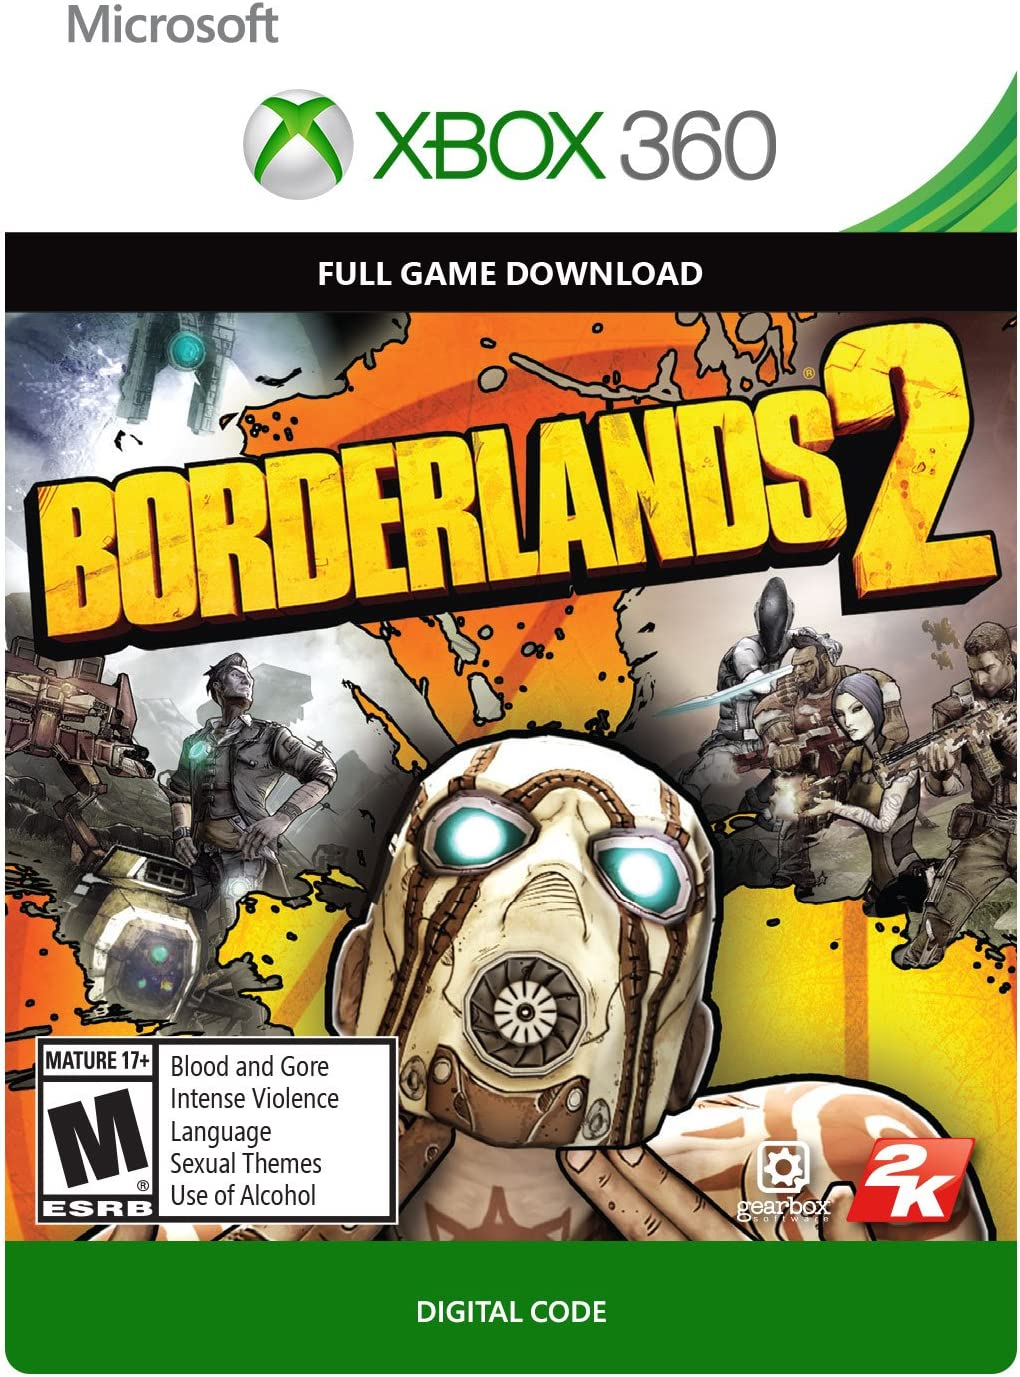 Amazon com: Borderlands 2 - Xbox 360 Digital Code: Video Games